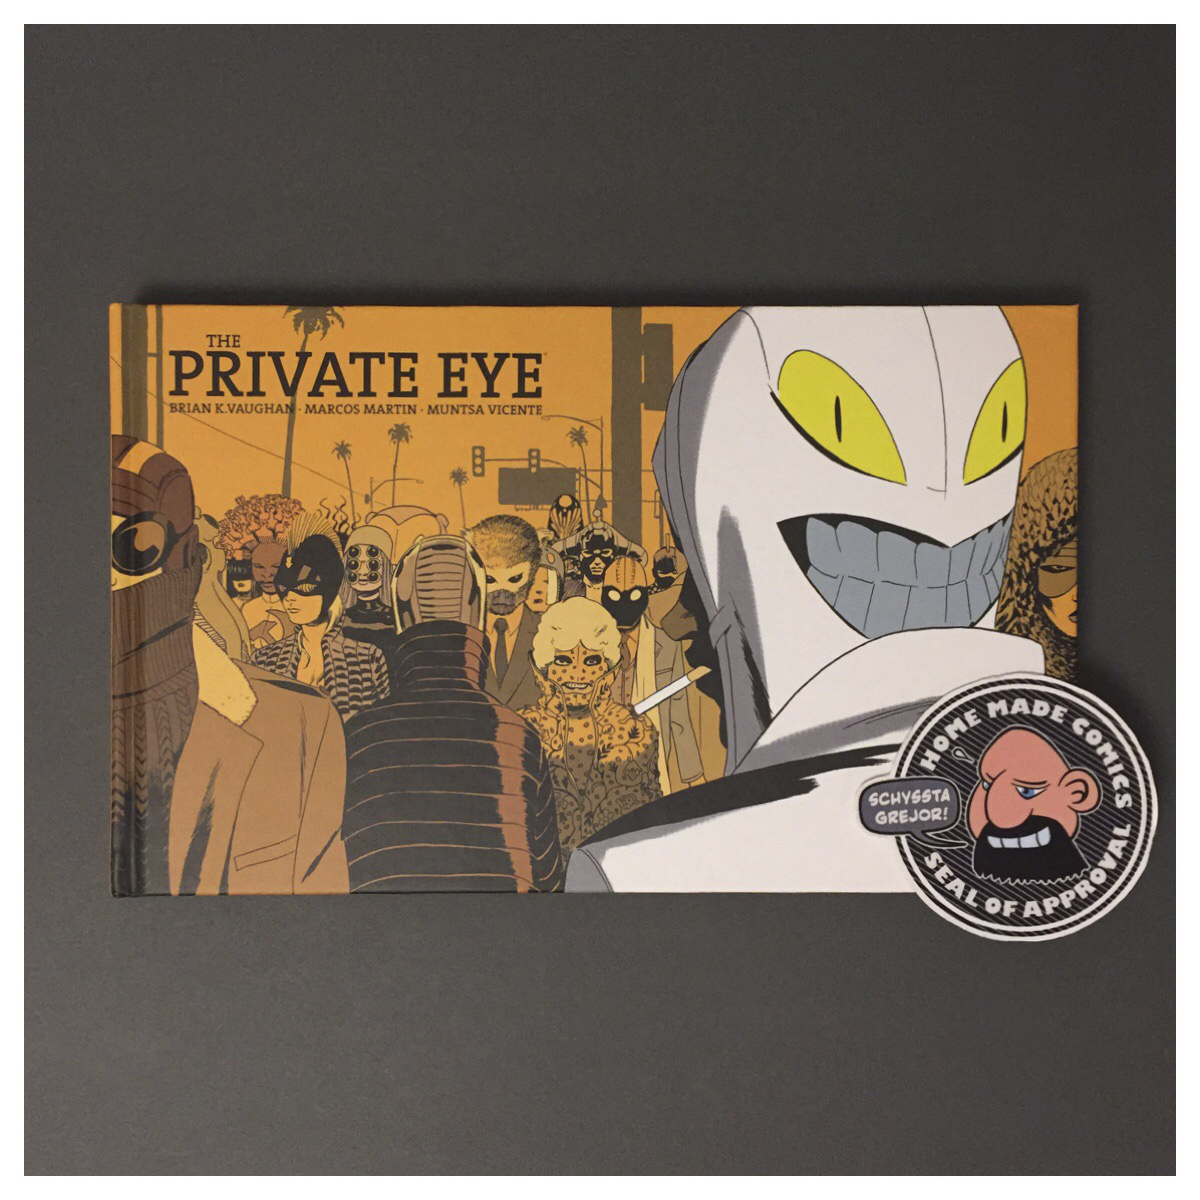 Home Made Comics Seal of Approval #210. The Private Eye av Brian K. Vaughan, Marcos Martin och Muntsa Vicente utgiven av Image Comics 2015.